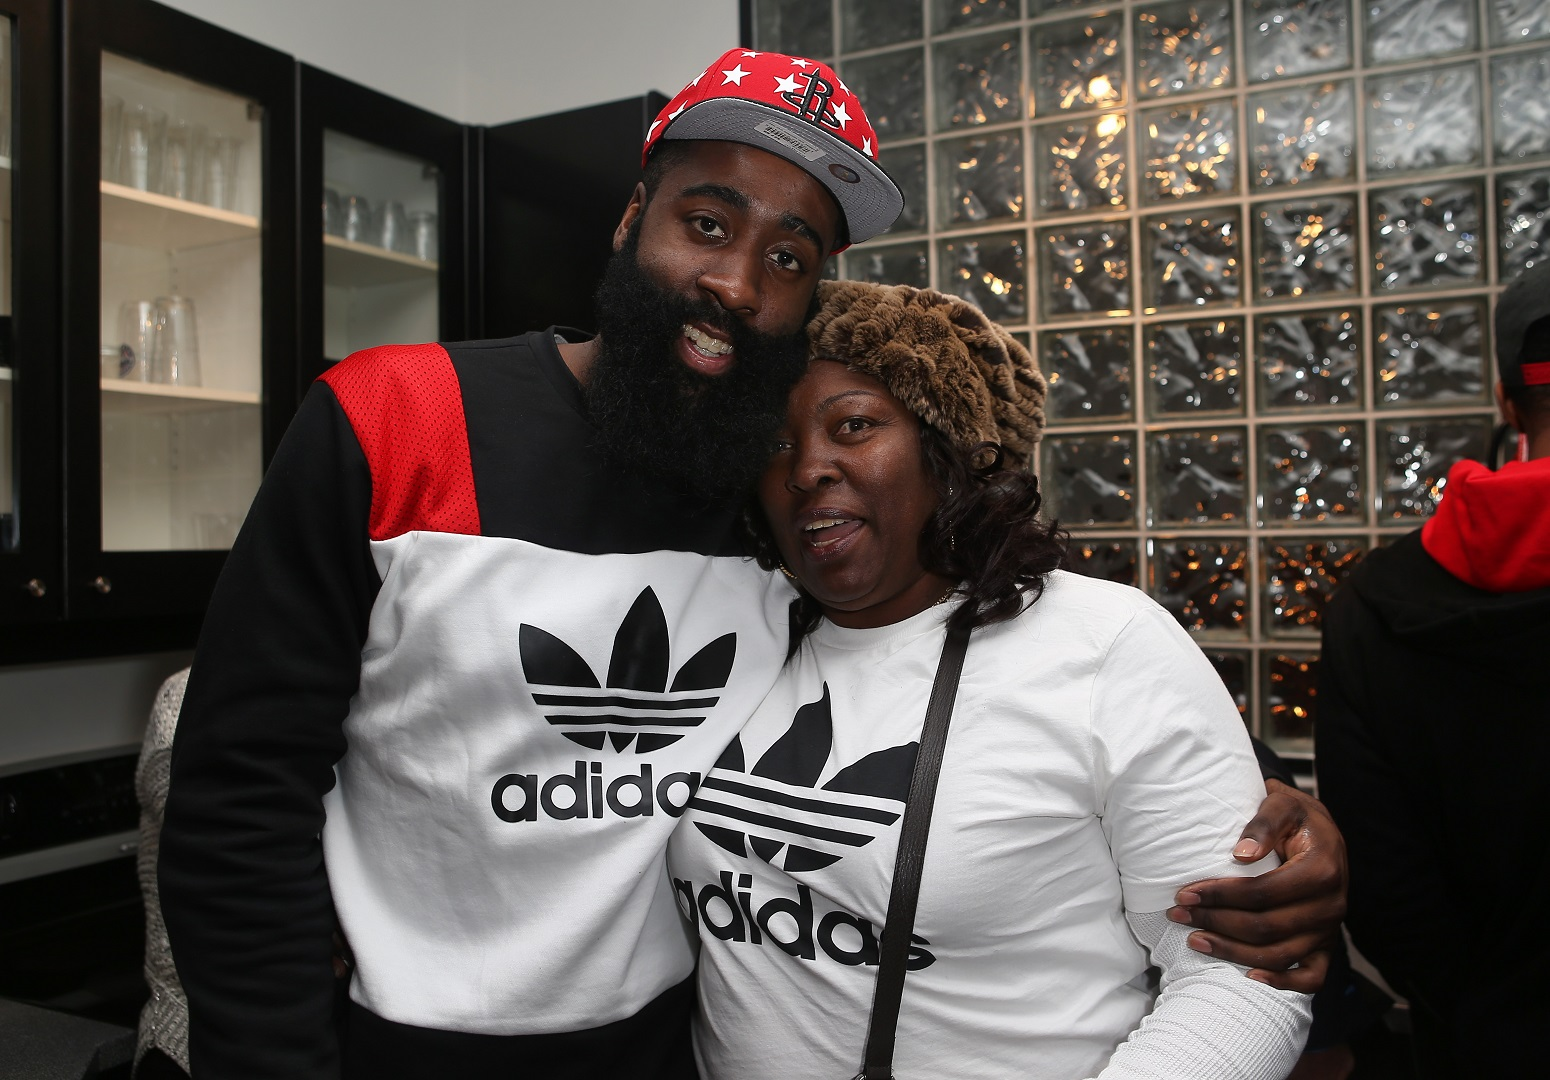 James Harden's mom Houston Rockets future